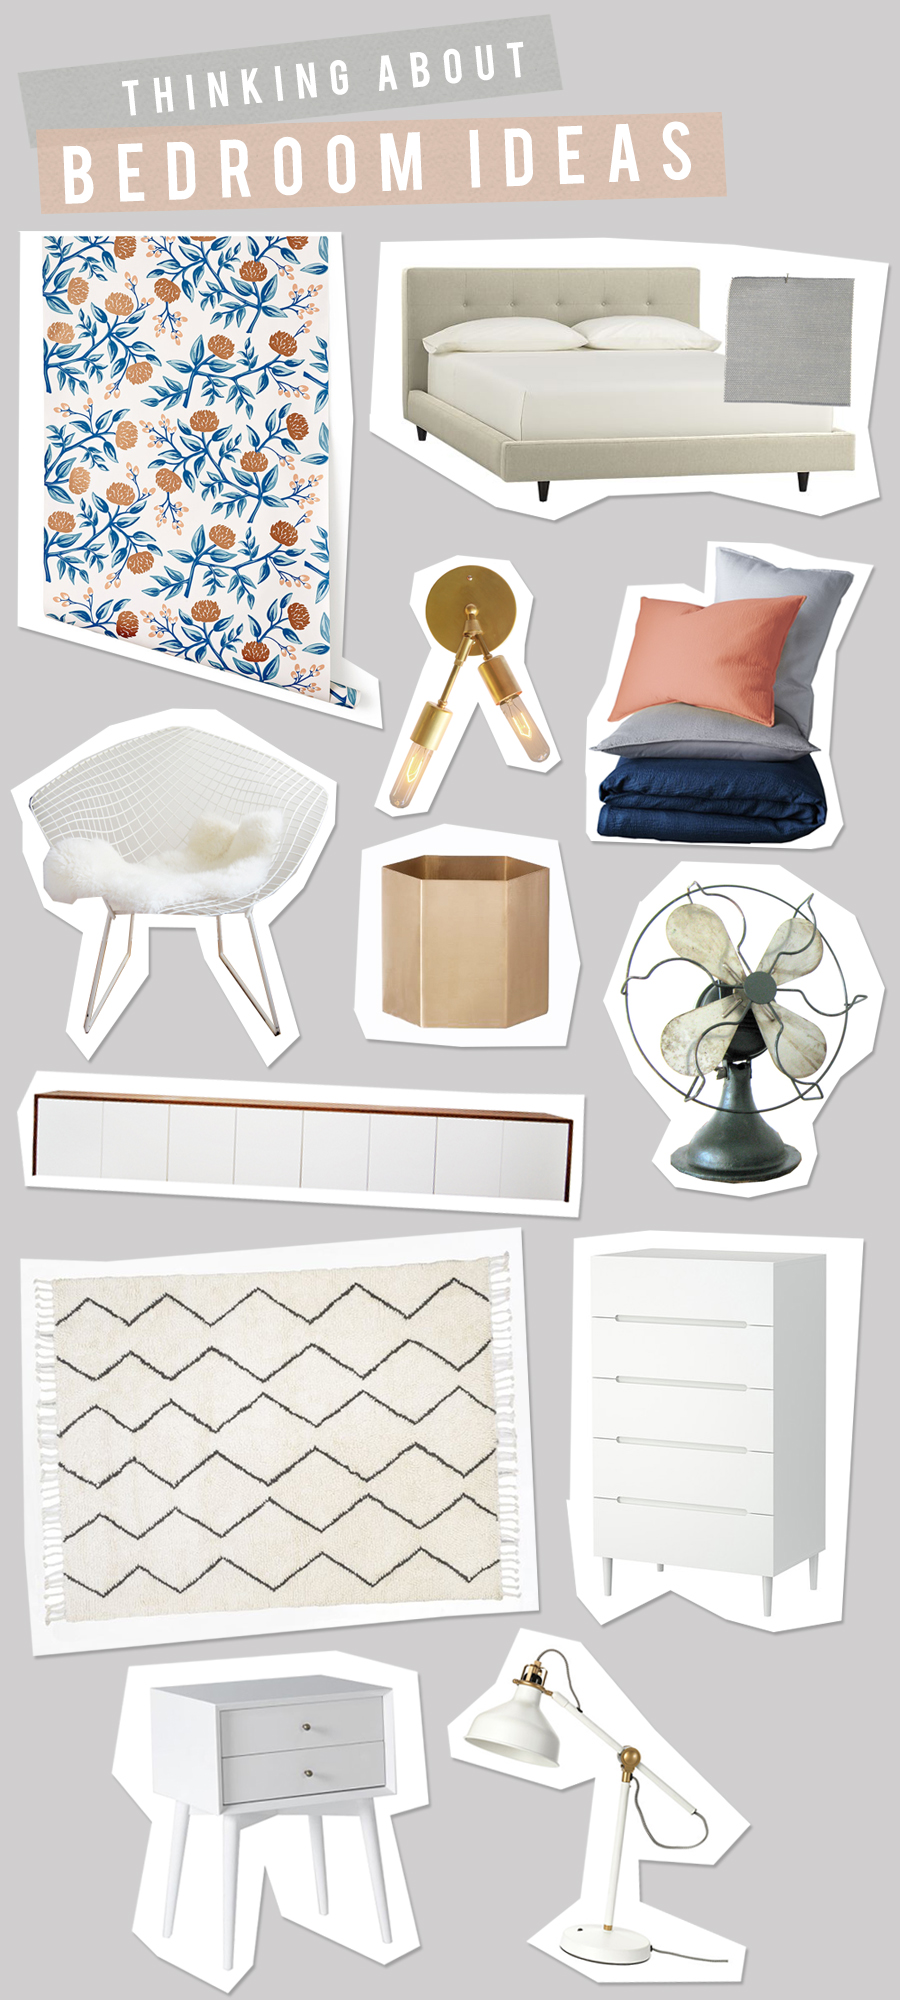 Vintage Modern Bedroom Idea Board